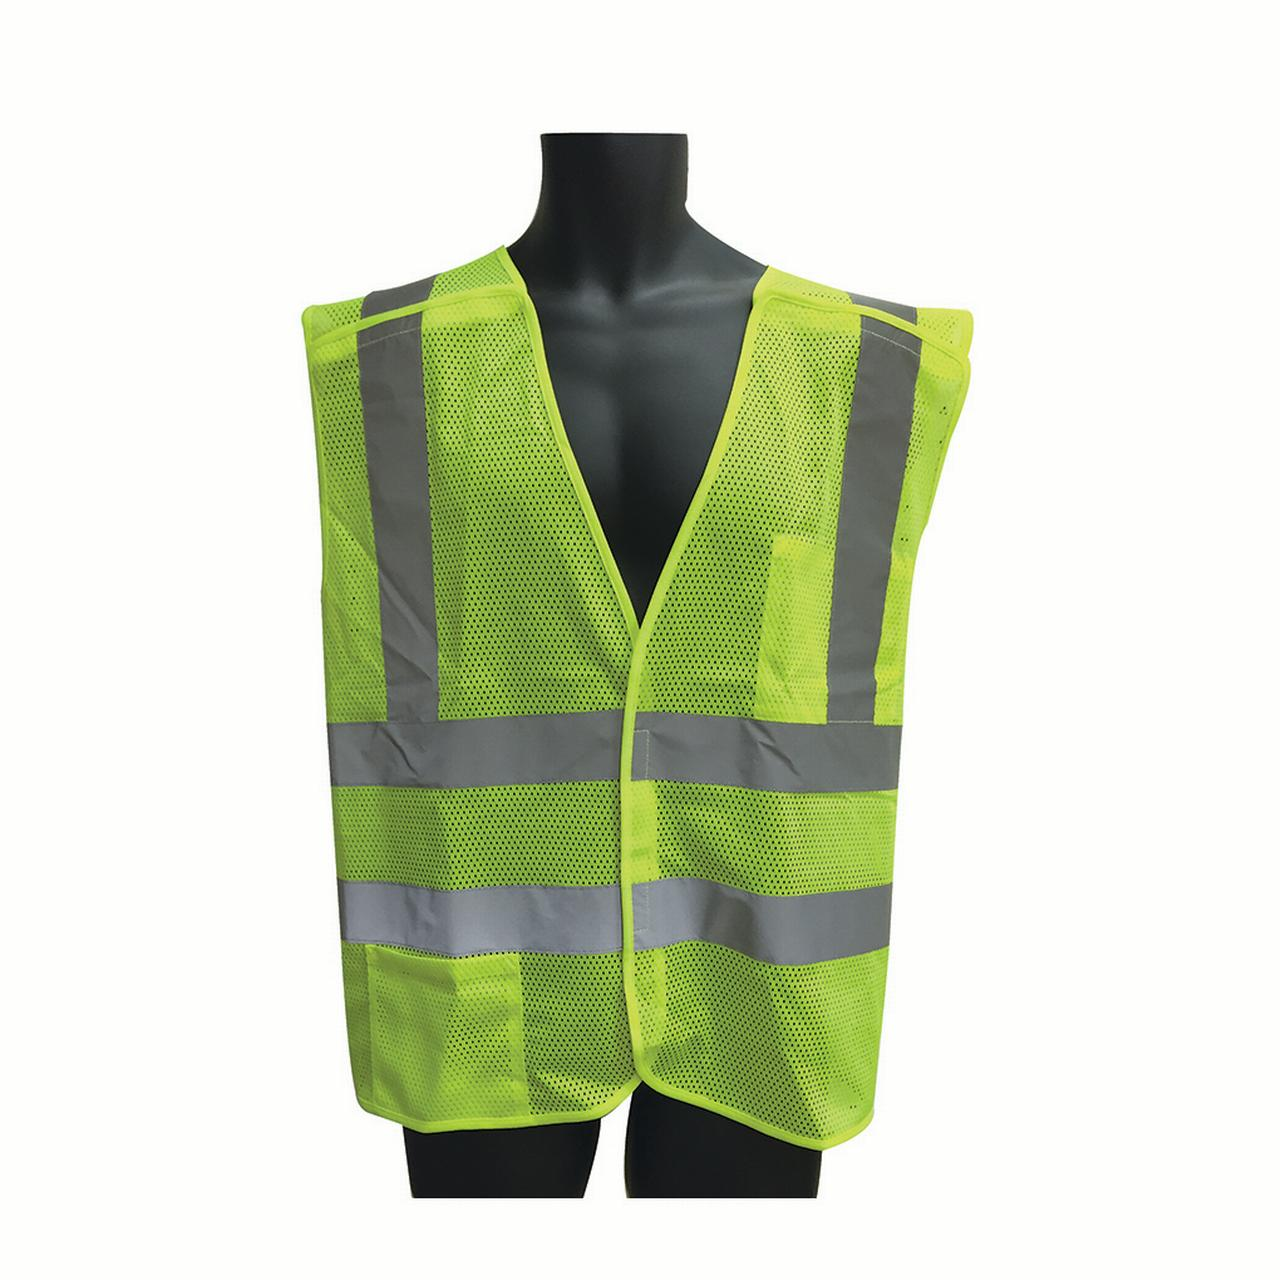 Class II, 5-Point Breakaway Vest Lime Green Mesh. Size: 2X-Large Lot of 1 Pack(s) of 1 Unit